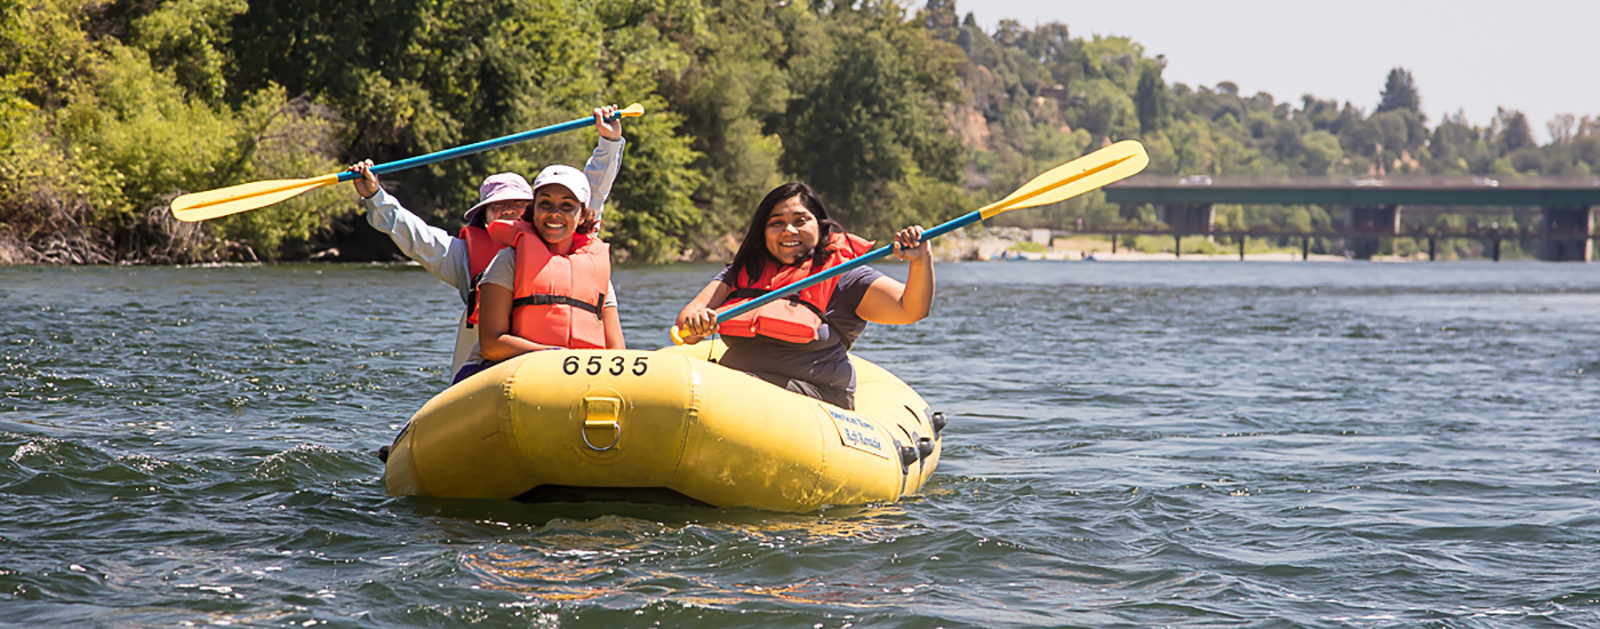 Rafting the American River.